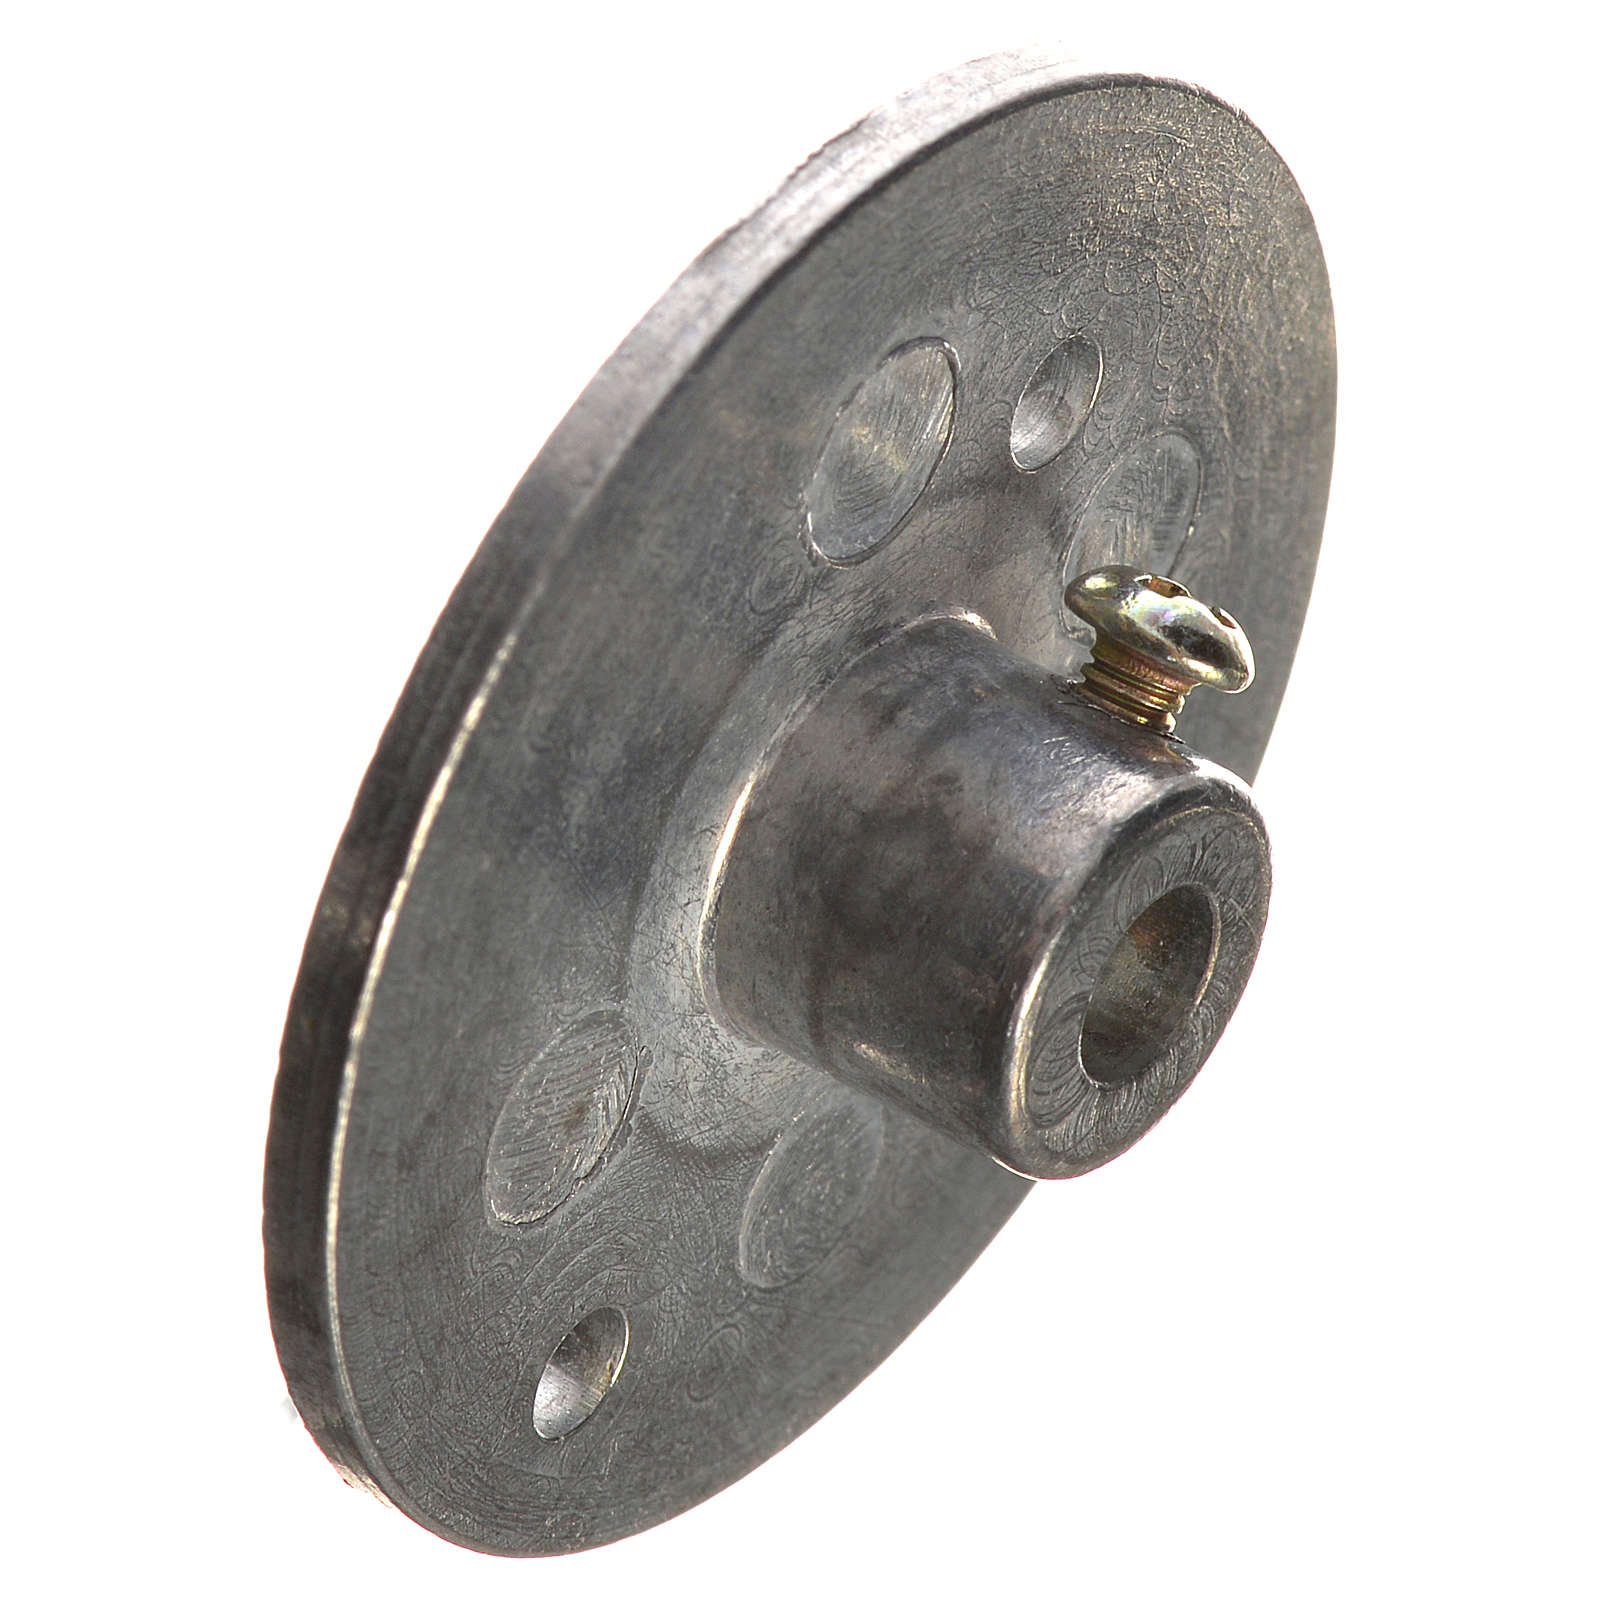 Iron pulley for motor reductor 353mm with 4mm hole 4